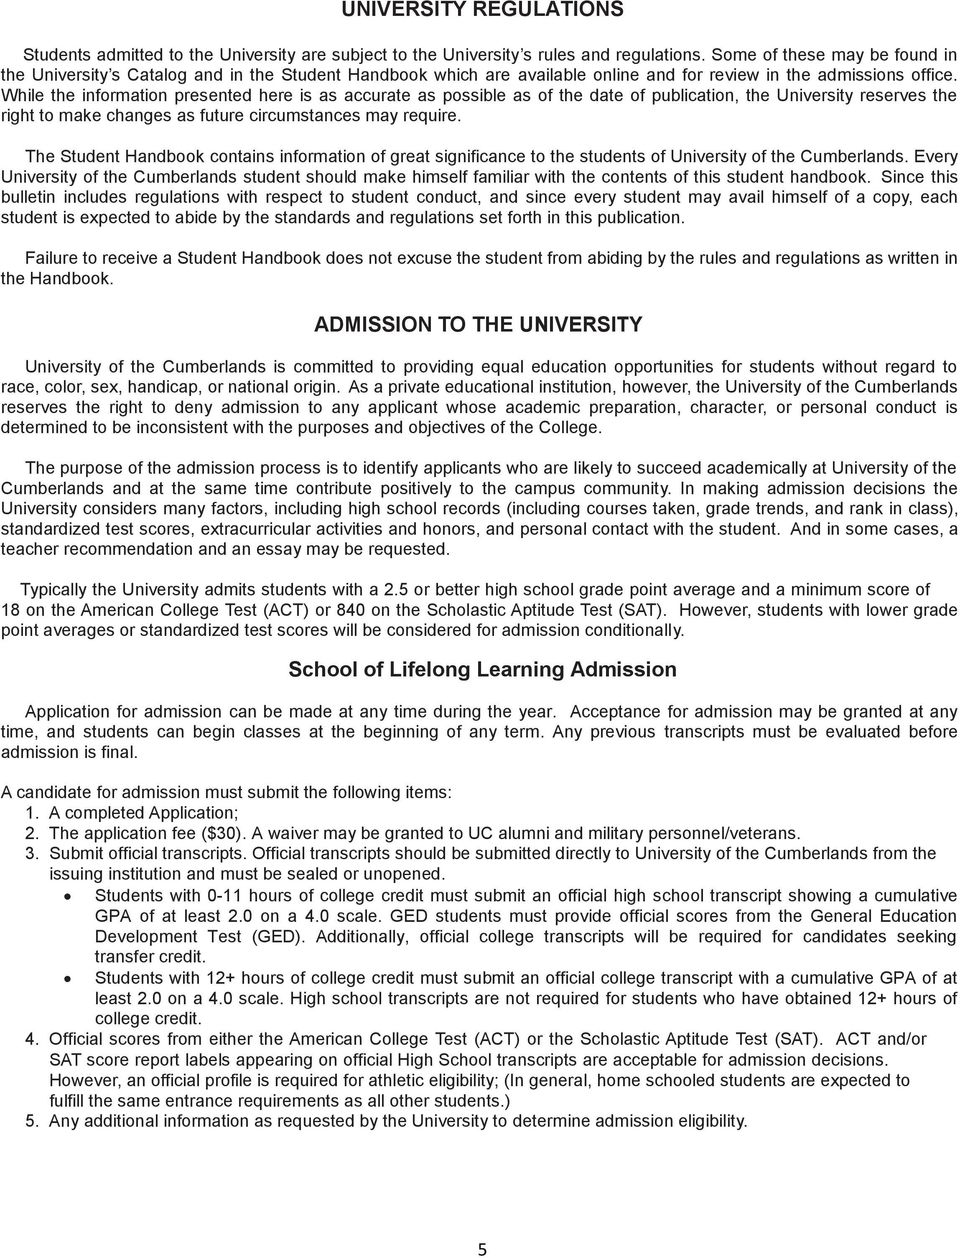 While the information presented here is as accurate as possible as of the date of publication, the University reserves the right to make changes as future circumstances may require.